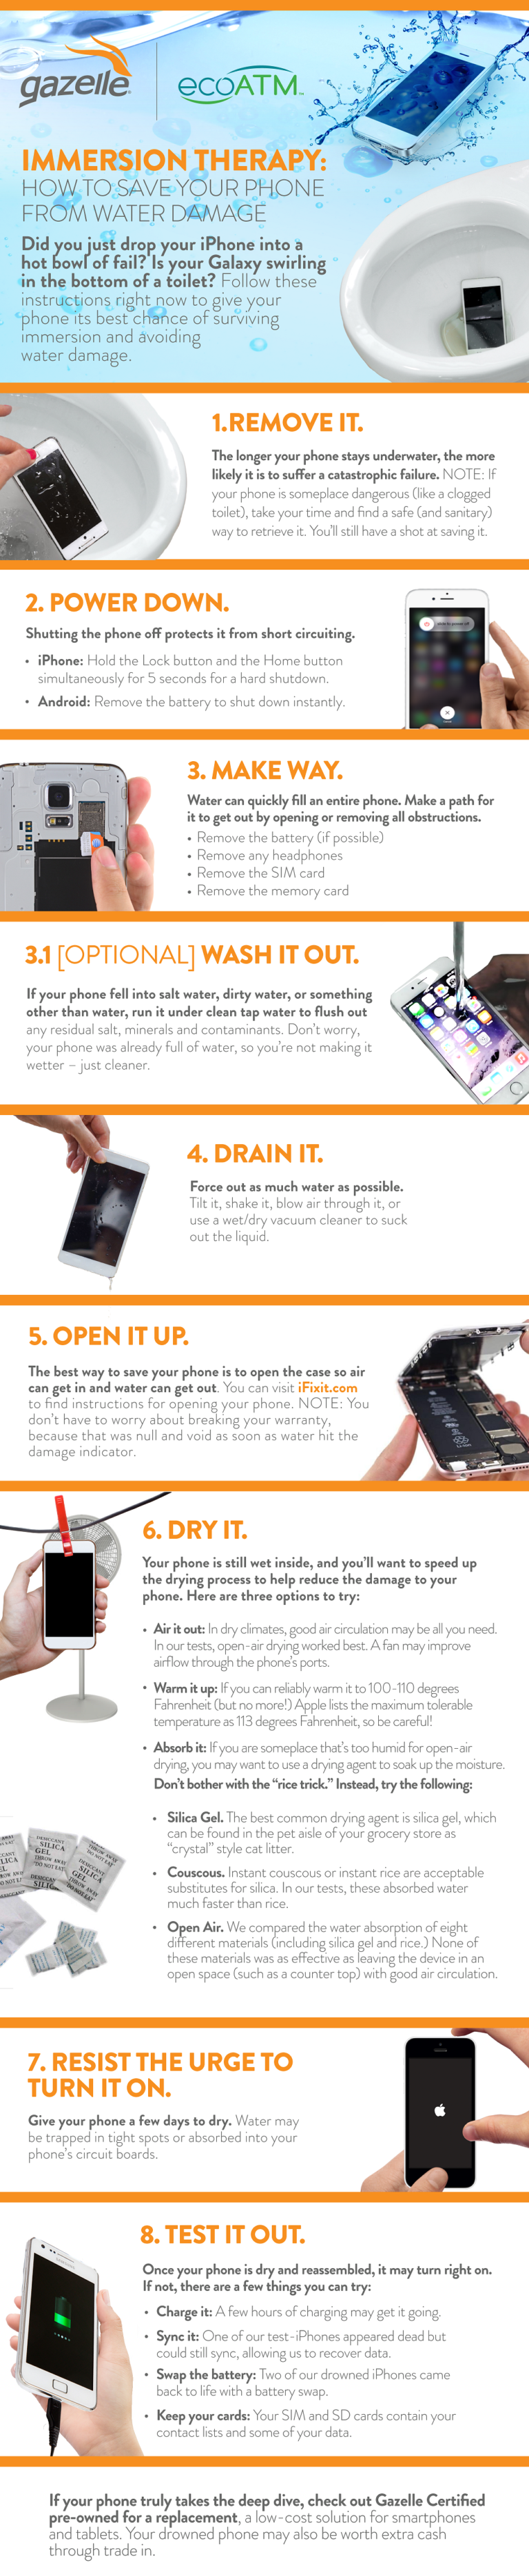 Immersion Therapy: How to save your phone from water damage